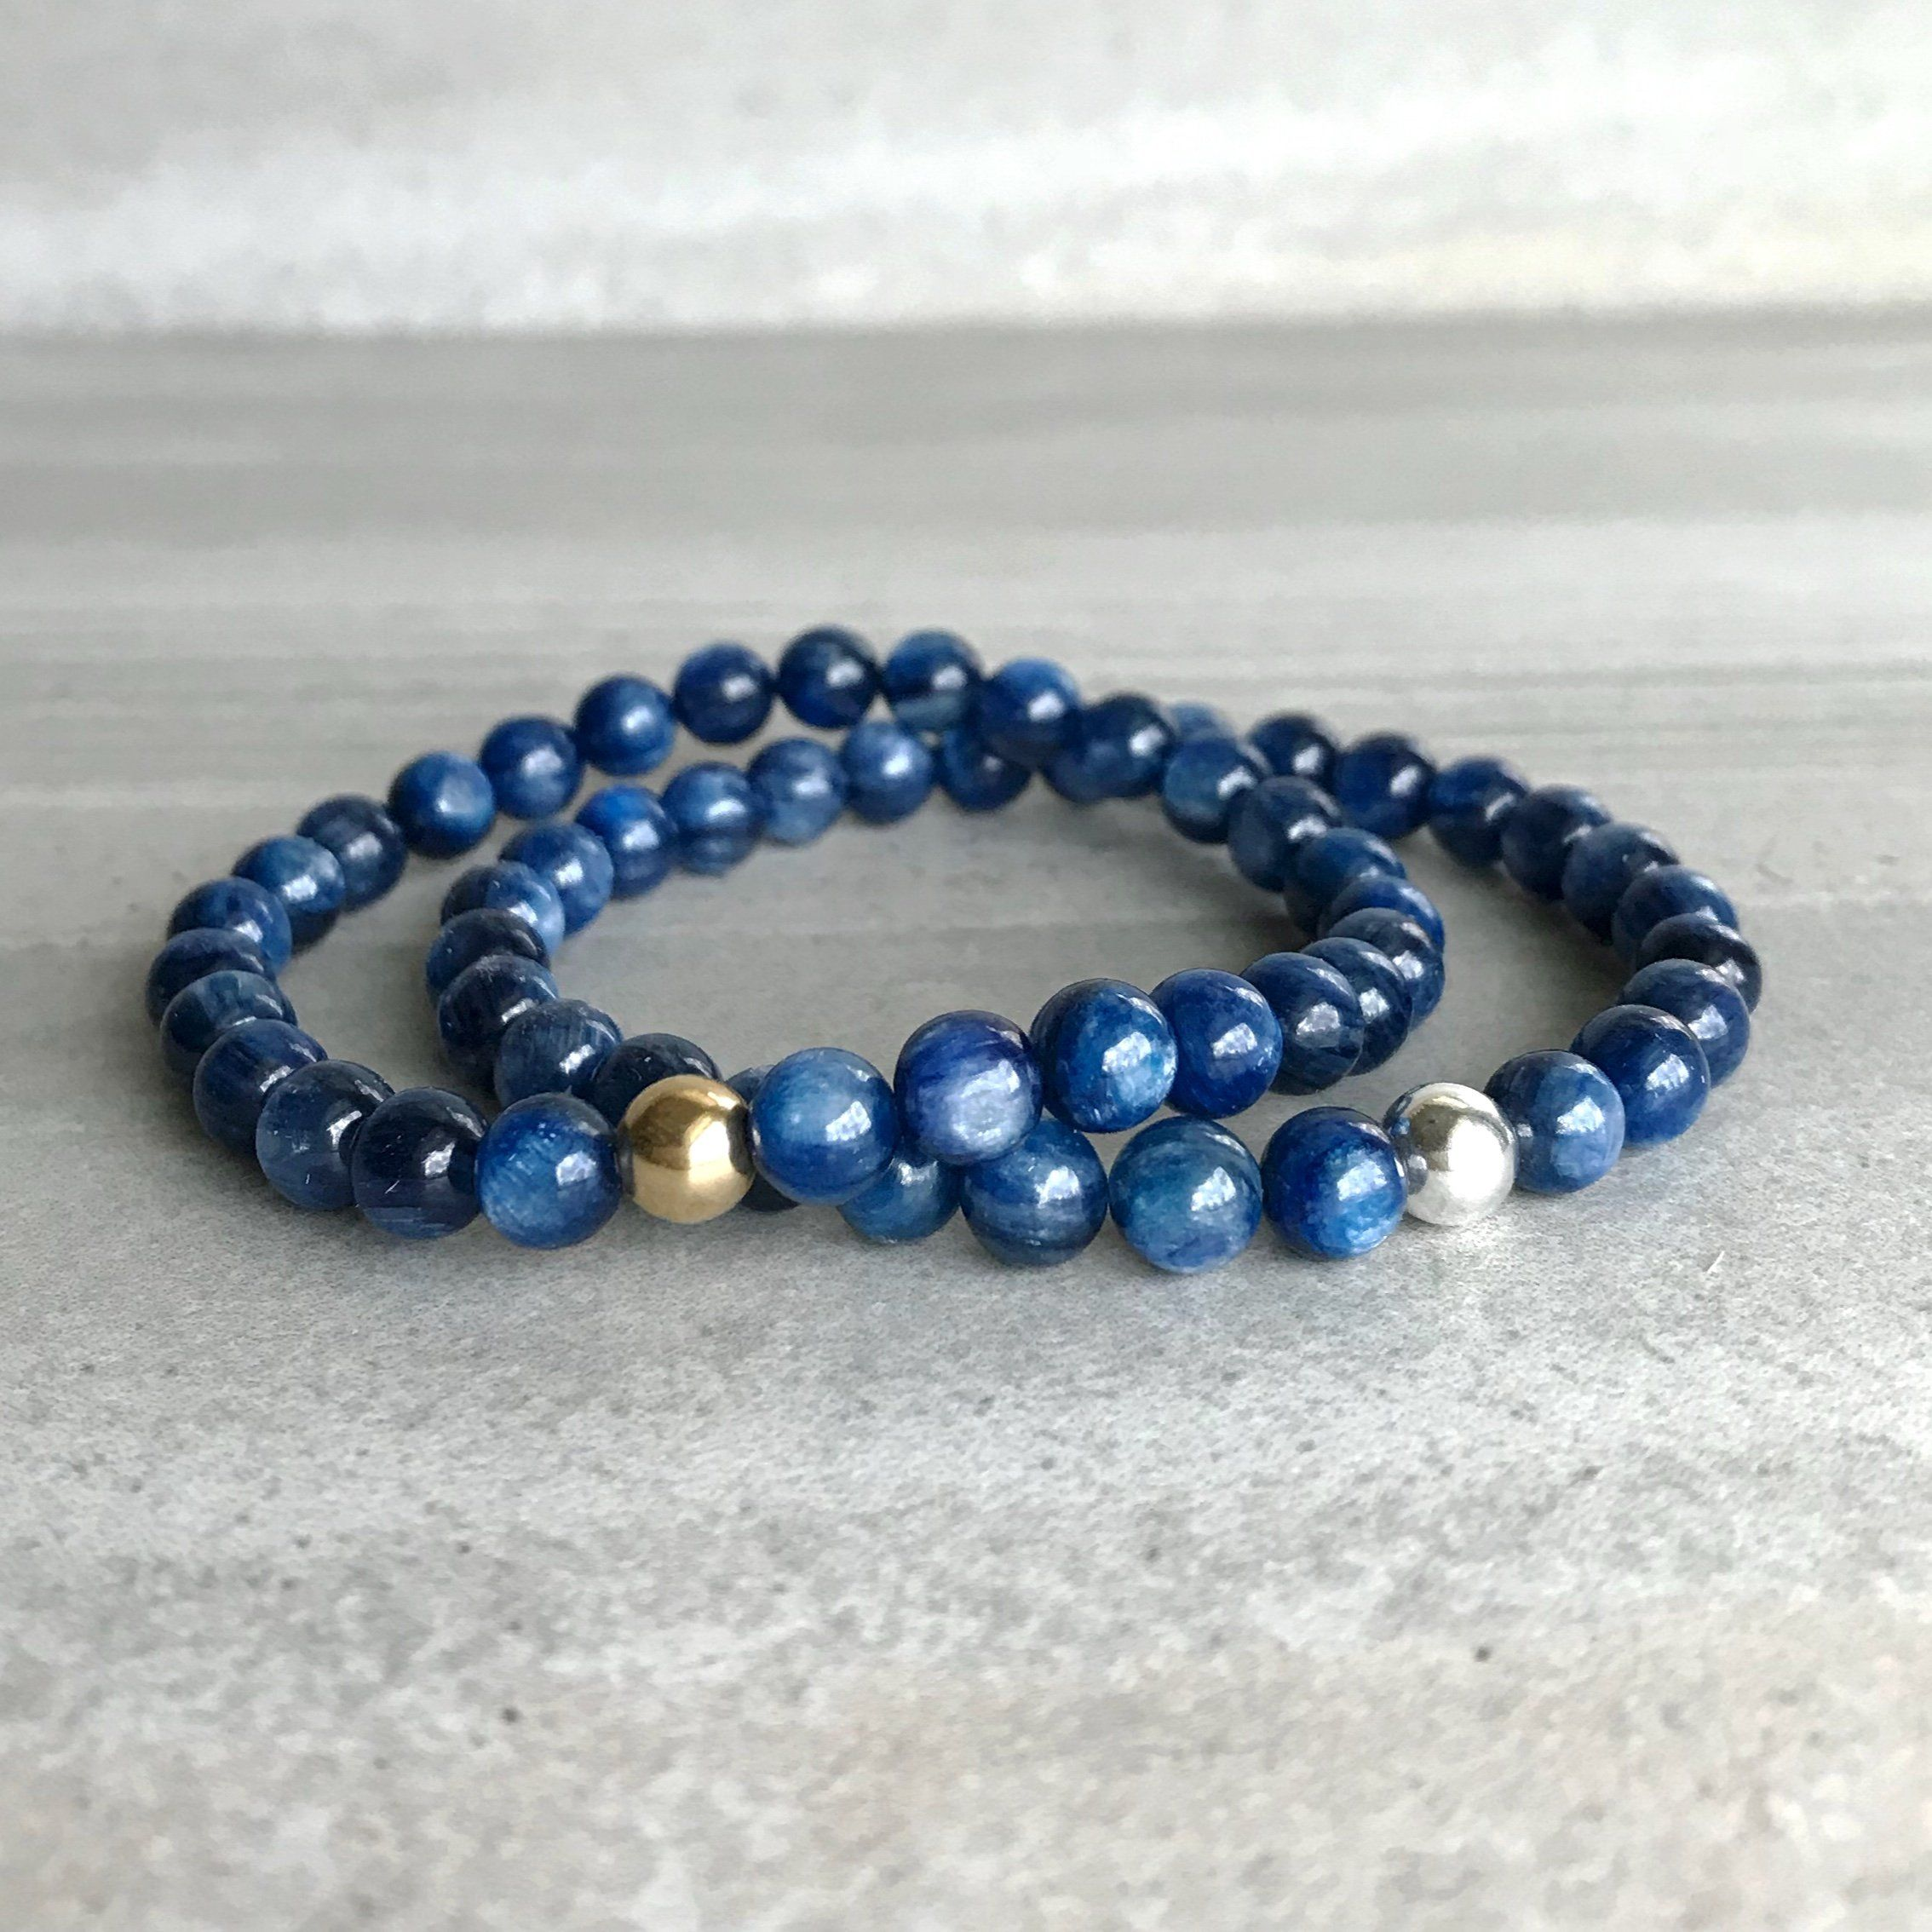 Kyanite Bracelet Genuine Blue Jewelry Silver Or Gold Bead For Women